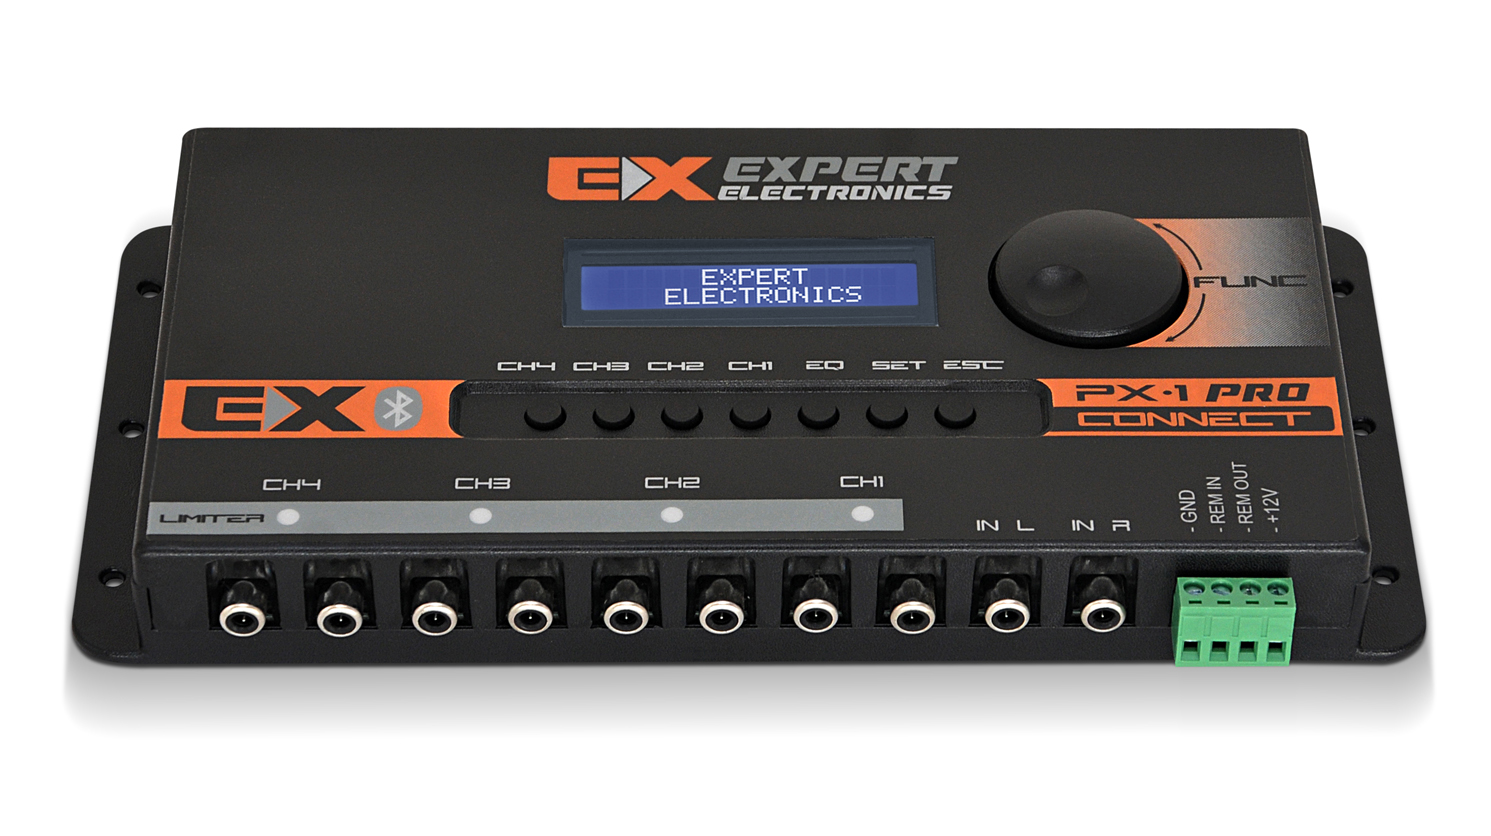 PX-1 PRO CONNECT_FRONTAL_EXPERT